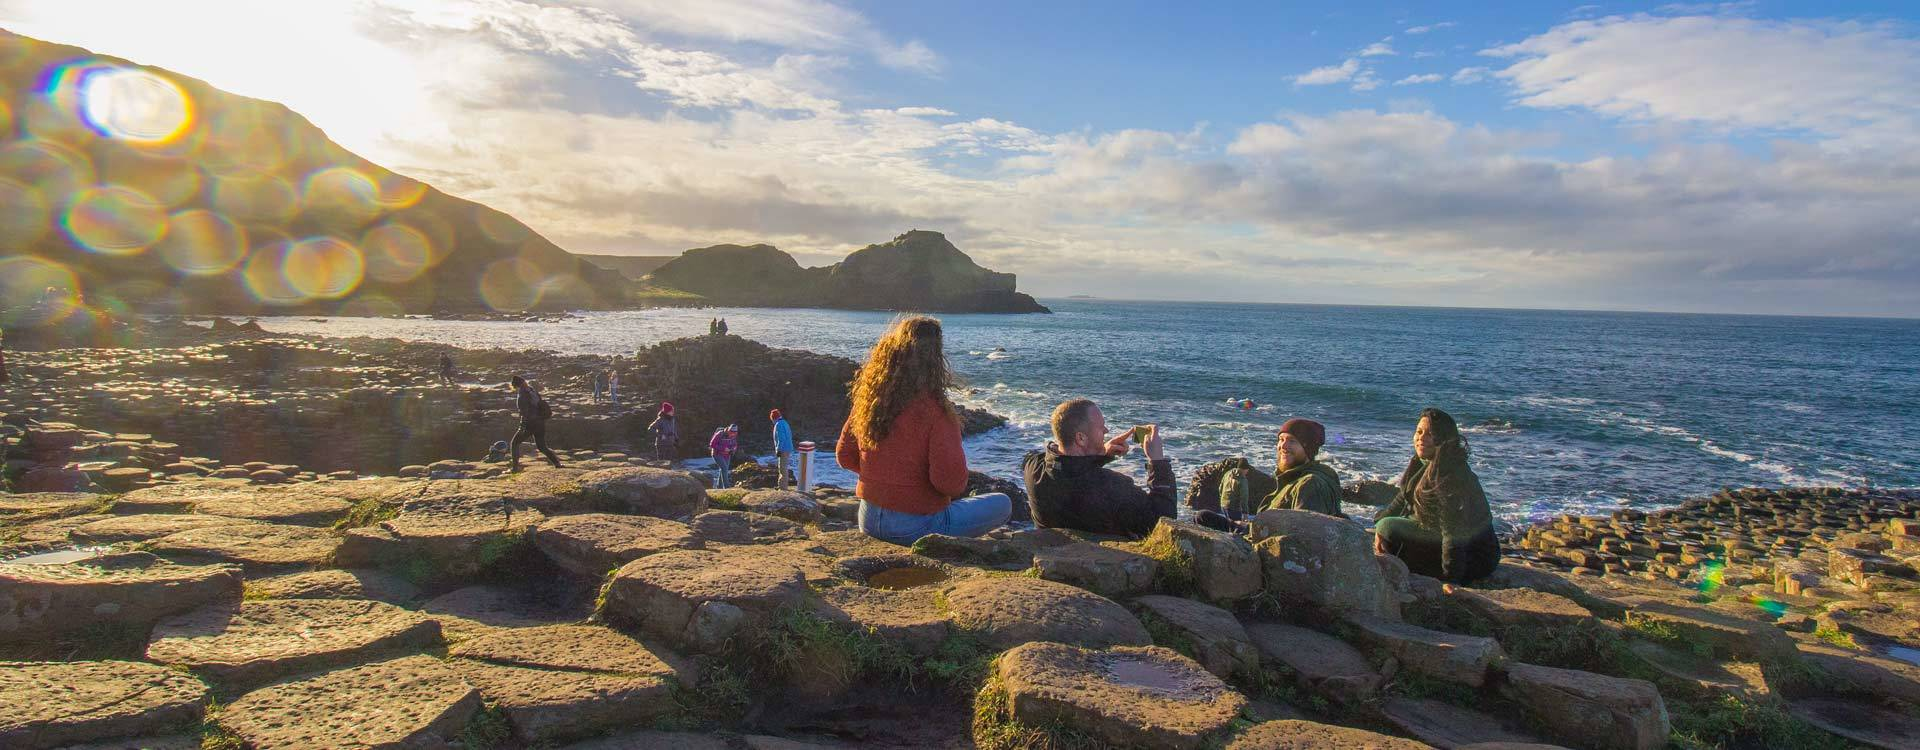 Giant's Causeway & Belfast Day Tour from Dublin